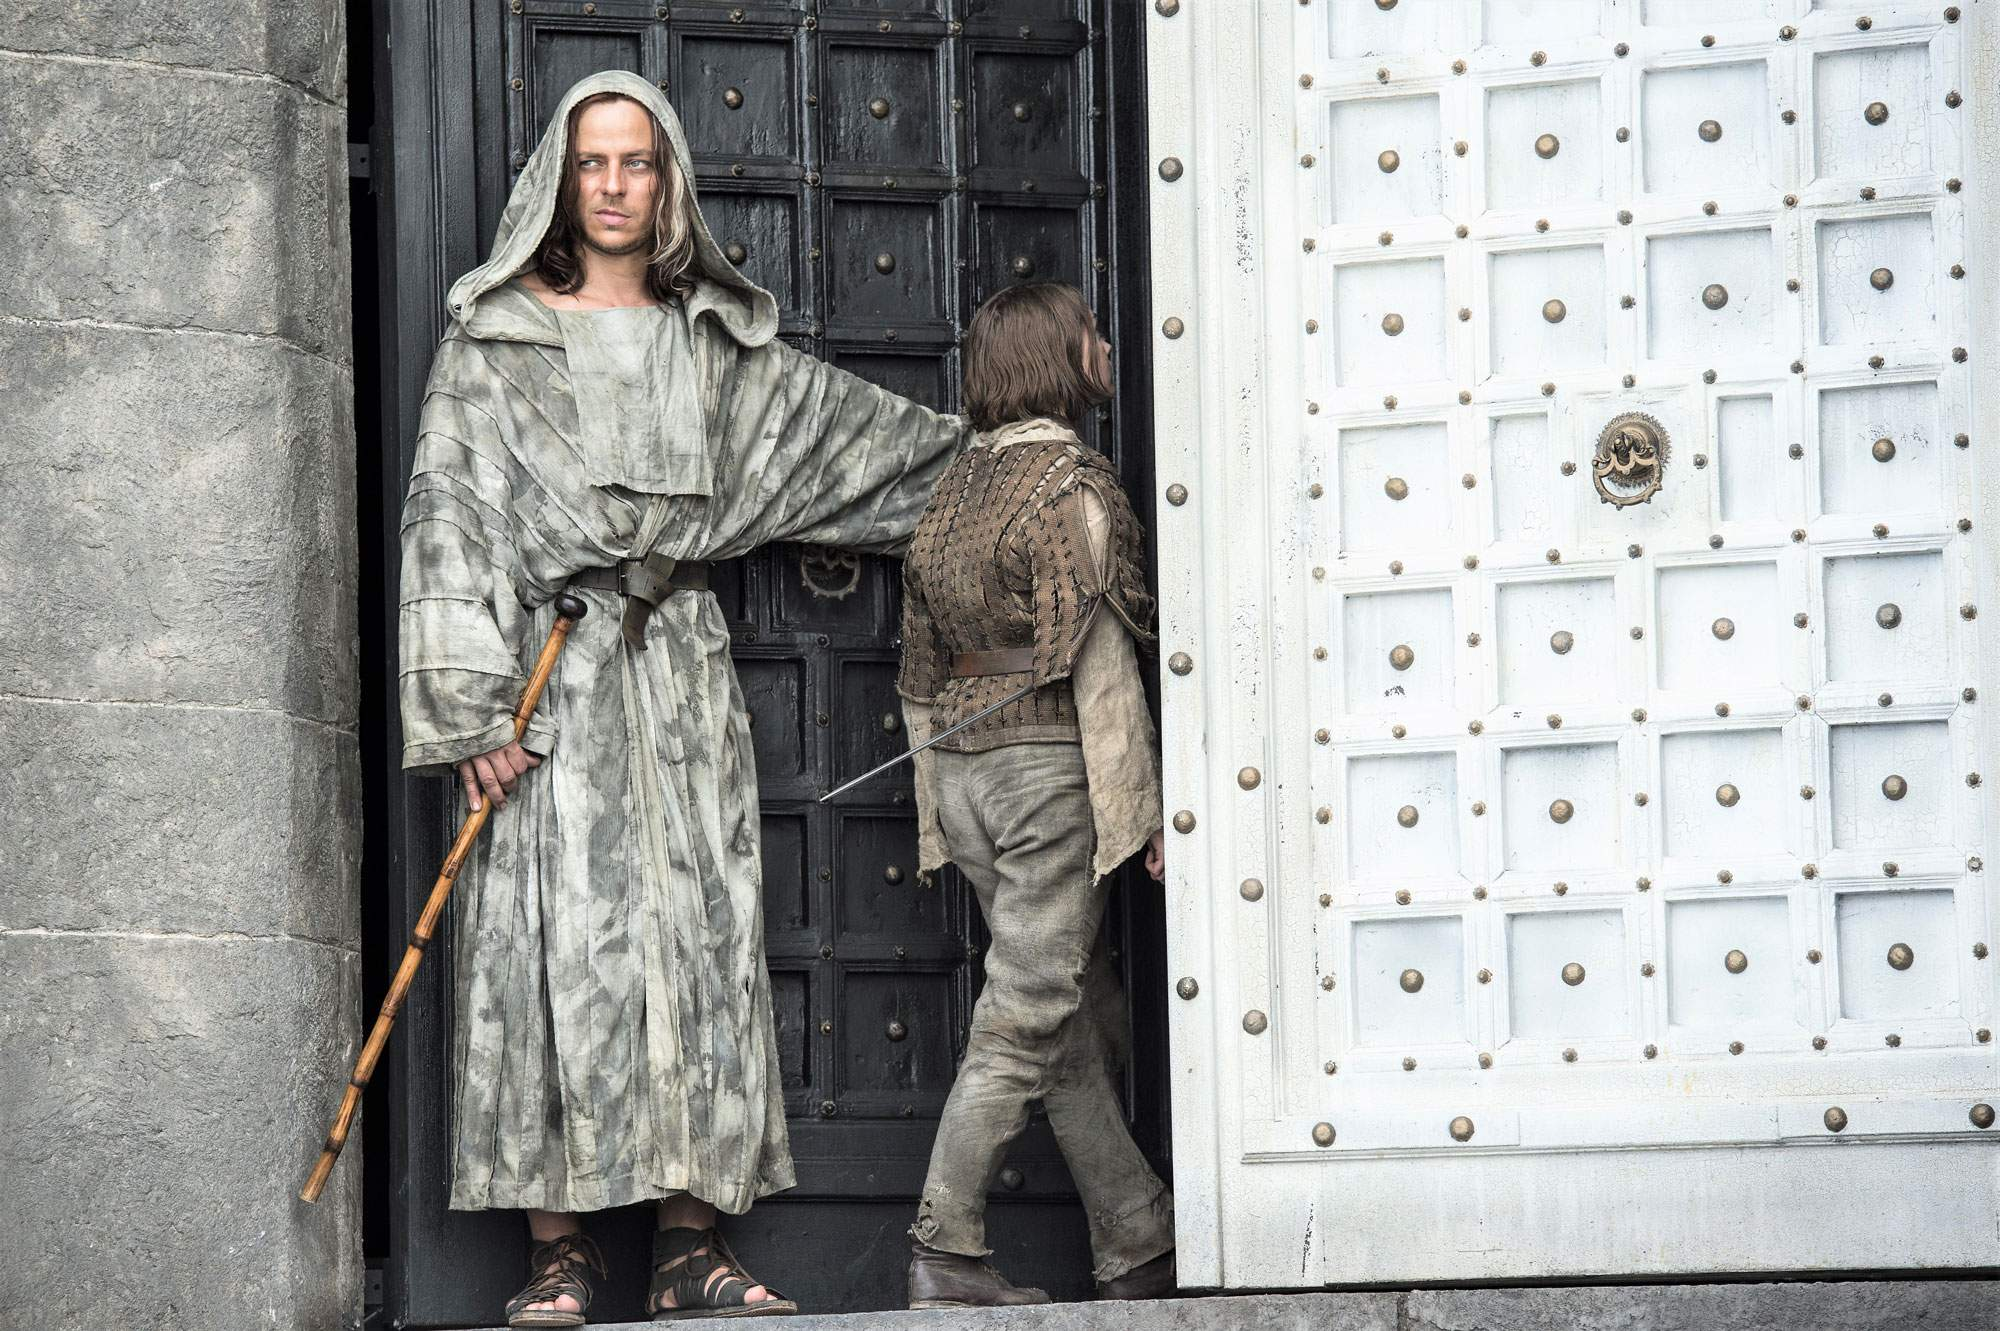 arya-house-of-white-and-black-game-of-thrones